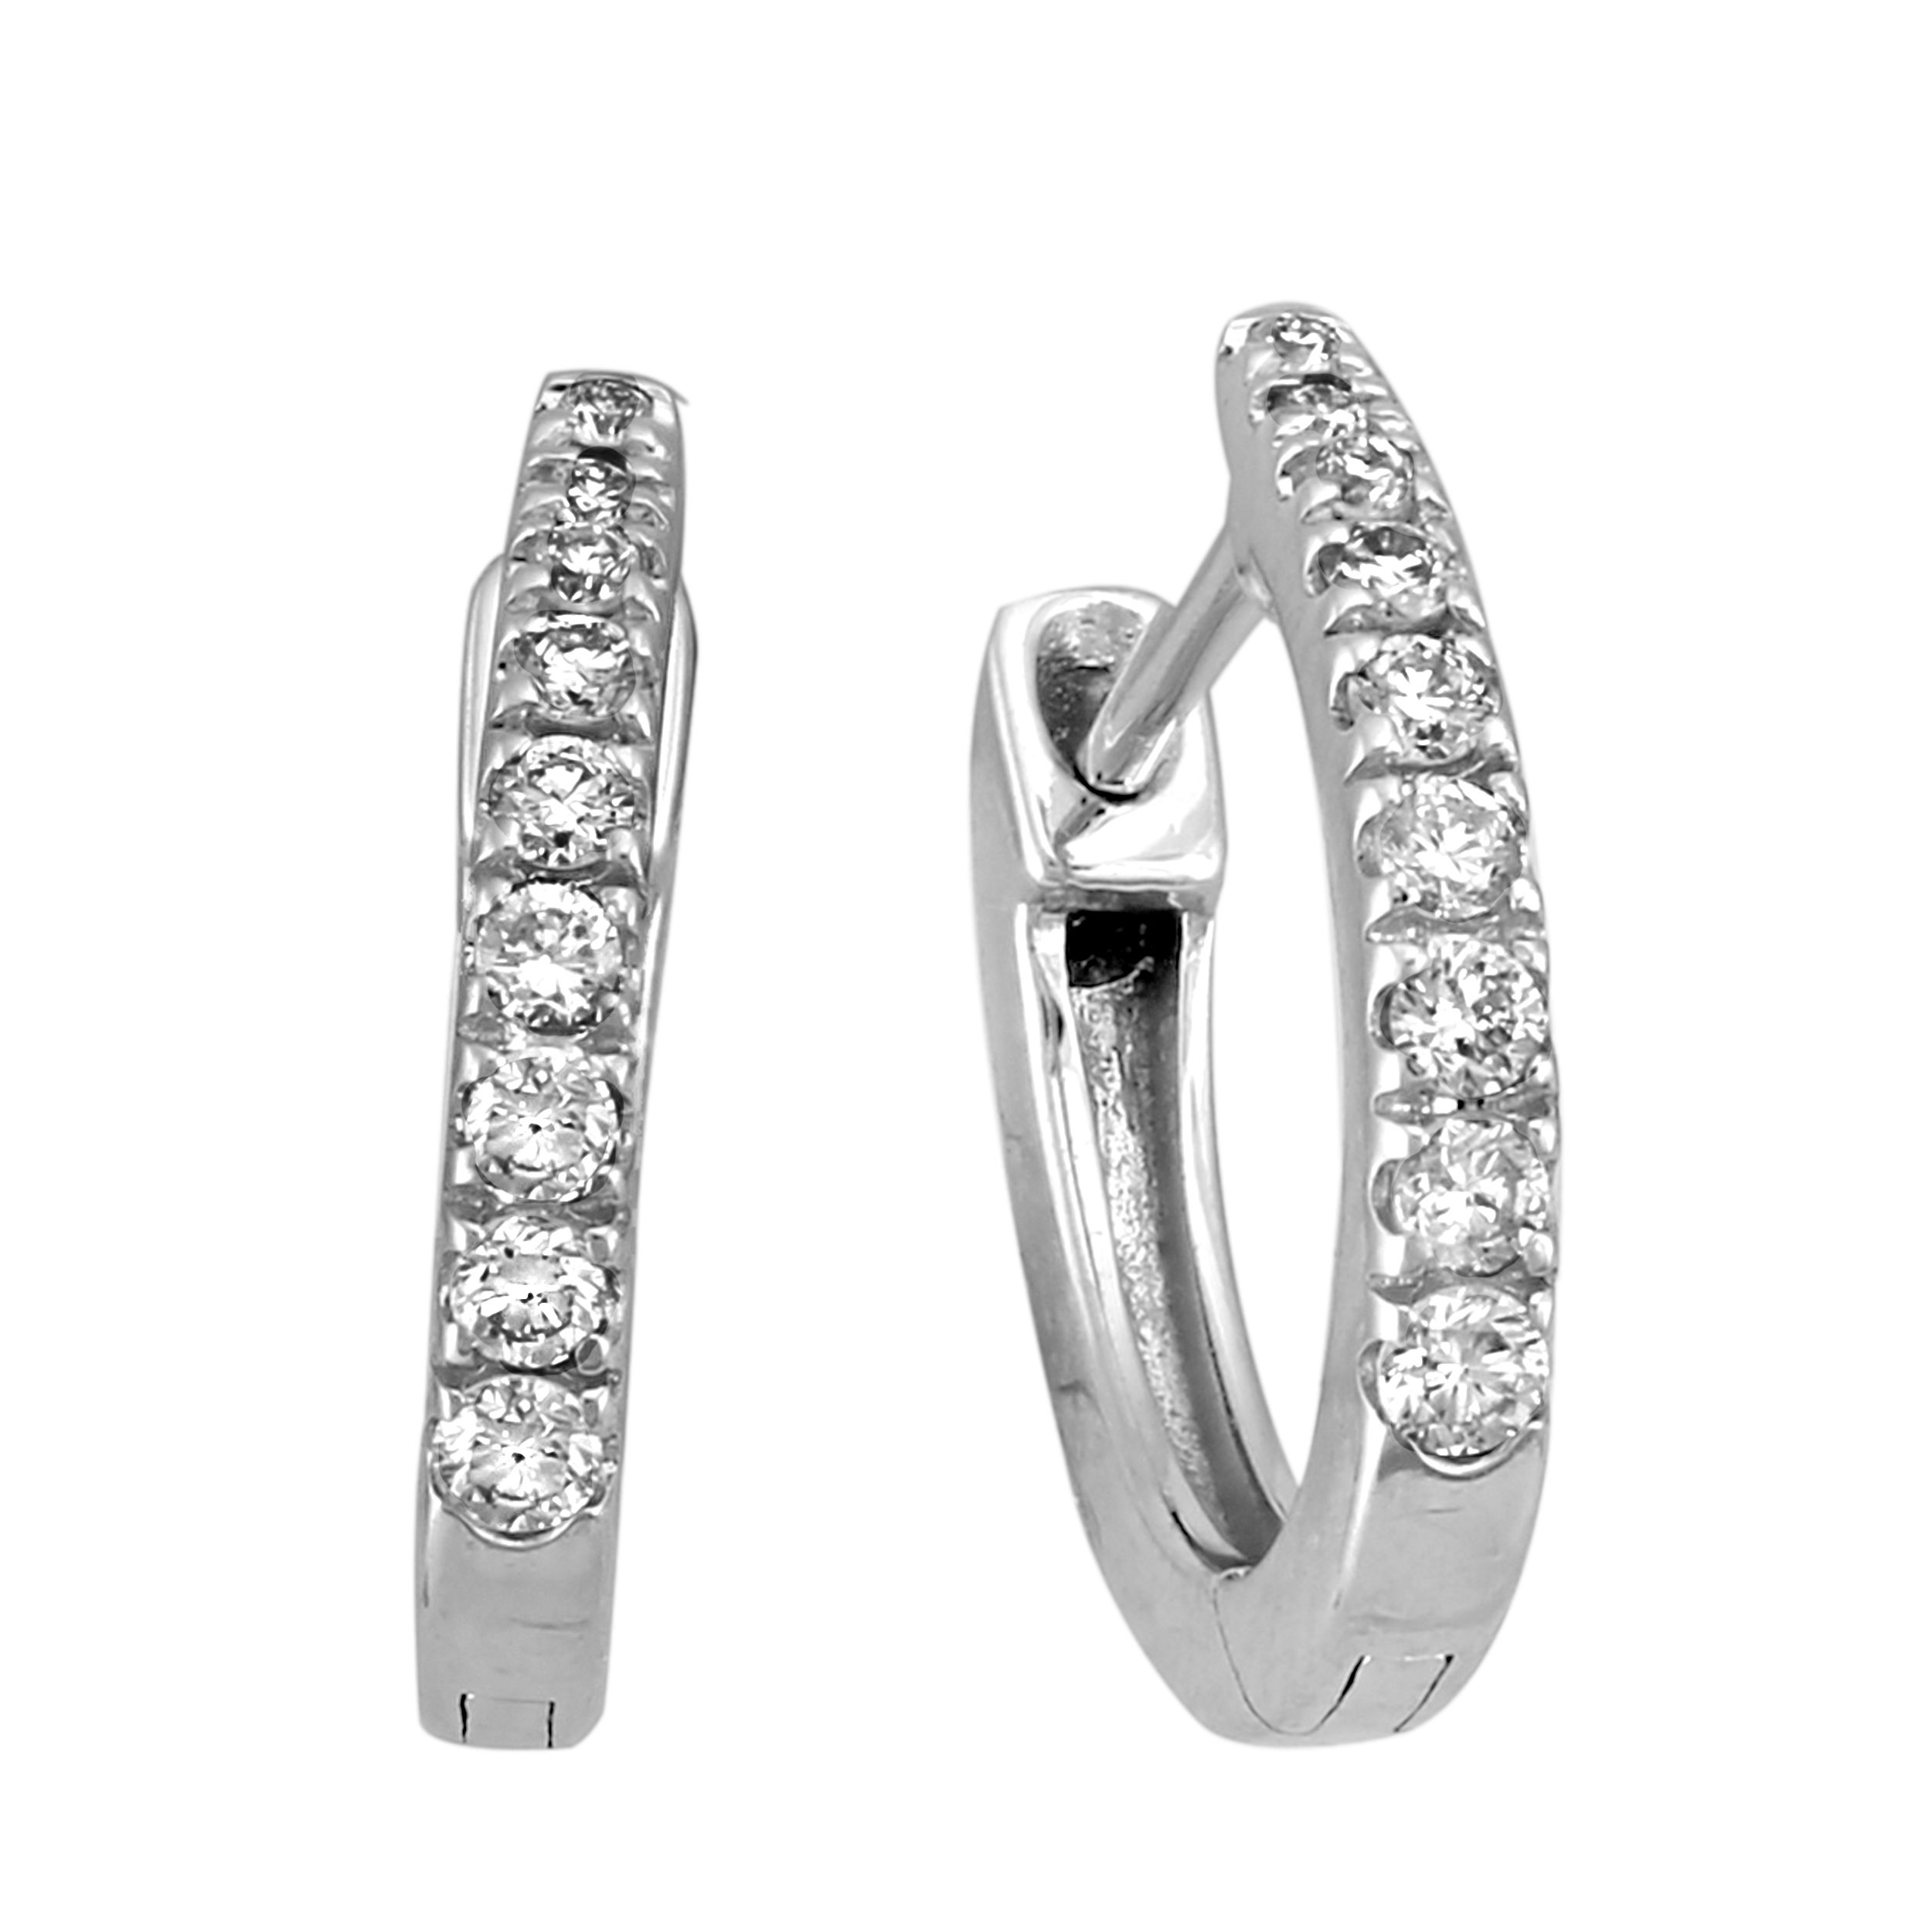 f09f38a6e747a Jewelry | Hollywood Hills Jewelery | Diamond hoop earrings, Hoop ...